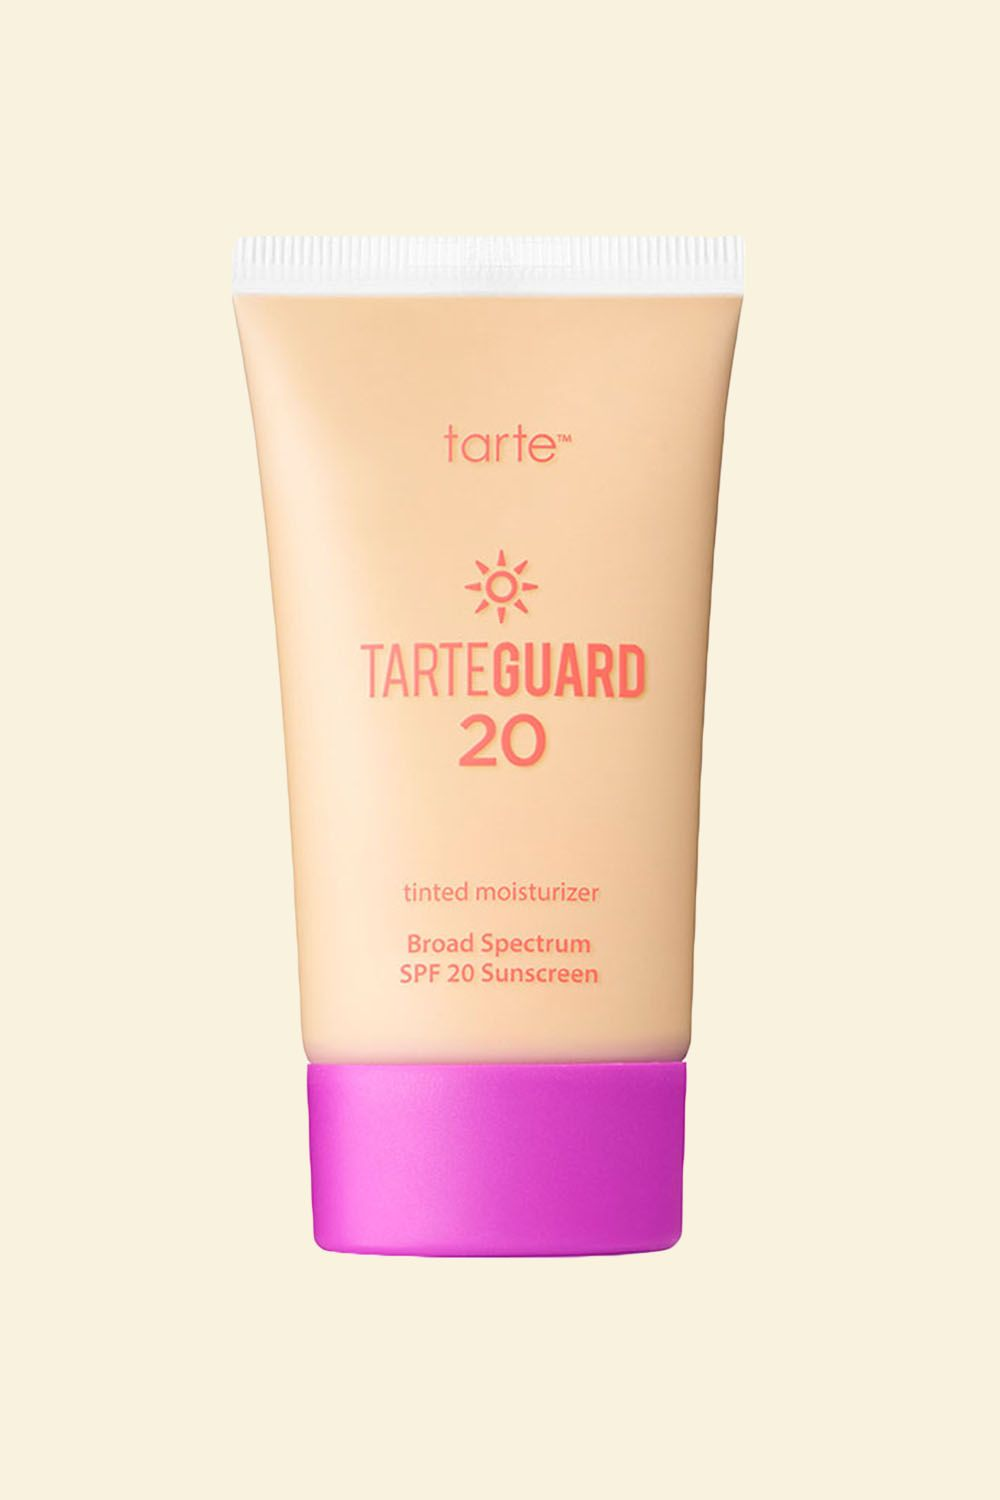 "<p>A little bit goes a loooong way with this new water-based formula, which is infused with moisture-retaining sodium hyaluronate and antioxidant-rich Vitamins A and E. Super smooth and east to blend, you can build soft matte coverage as desired to cover uneven skin tone, redness, and dark marks.<br></p><p><span class=""redactor-invisible-space"" data-verified=""redactor"" data-redactor-tag=""span"" data-redactor-class=""redactor-invisible-space""><br></span> </p><p><span class=""redactor-invisible-space"" data-verified=""redactor"" data-redactor-tag=""span"" data-redactor-class=""redactor-invisible-space"">Tarteguard 20 Tinted Moisturizer Broad Spectrum SPF 20 Sunscreen<span class=""redactor-invisible-space"" data-verified=""redactor"" data-redactor-tag=""span"" data-redactor-class=""redactor-invisible-space"">, $36; <a href=""http://bit.ly/2jCUFjy"" target=""_blank"" data-tracking-id=""recirc-text-link"">sephora.com</a>.<span class=""redactor-invisible-space"" data-verified=""redactor"" data-redactor-tag=""span"" data-redactor-class=""redactor-invisible-space""></span></span><br></span></p>"